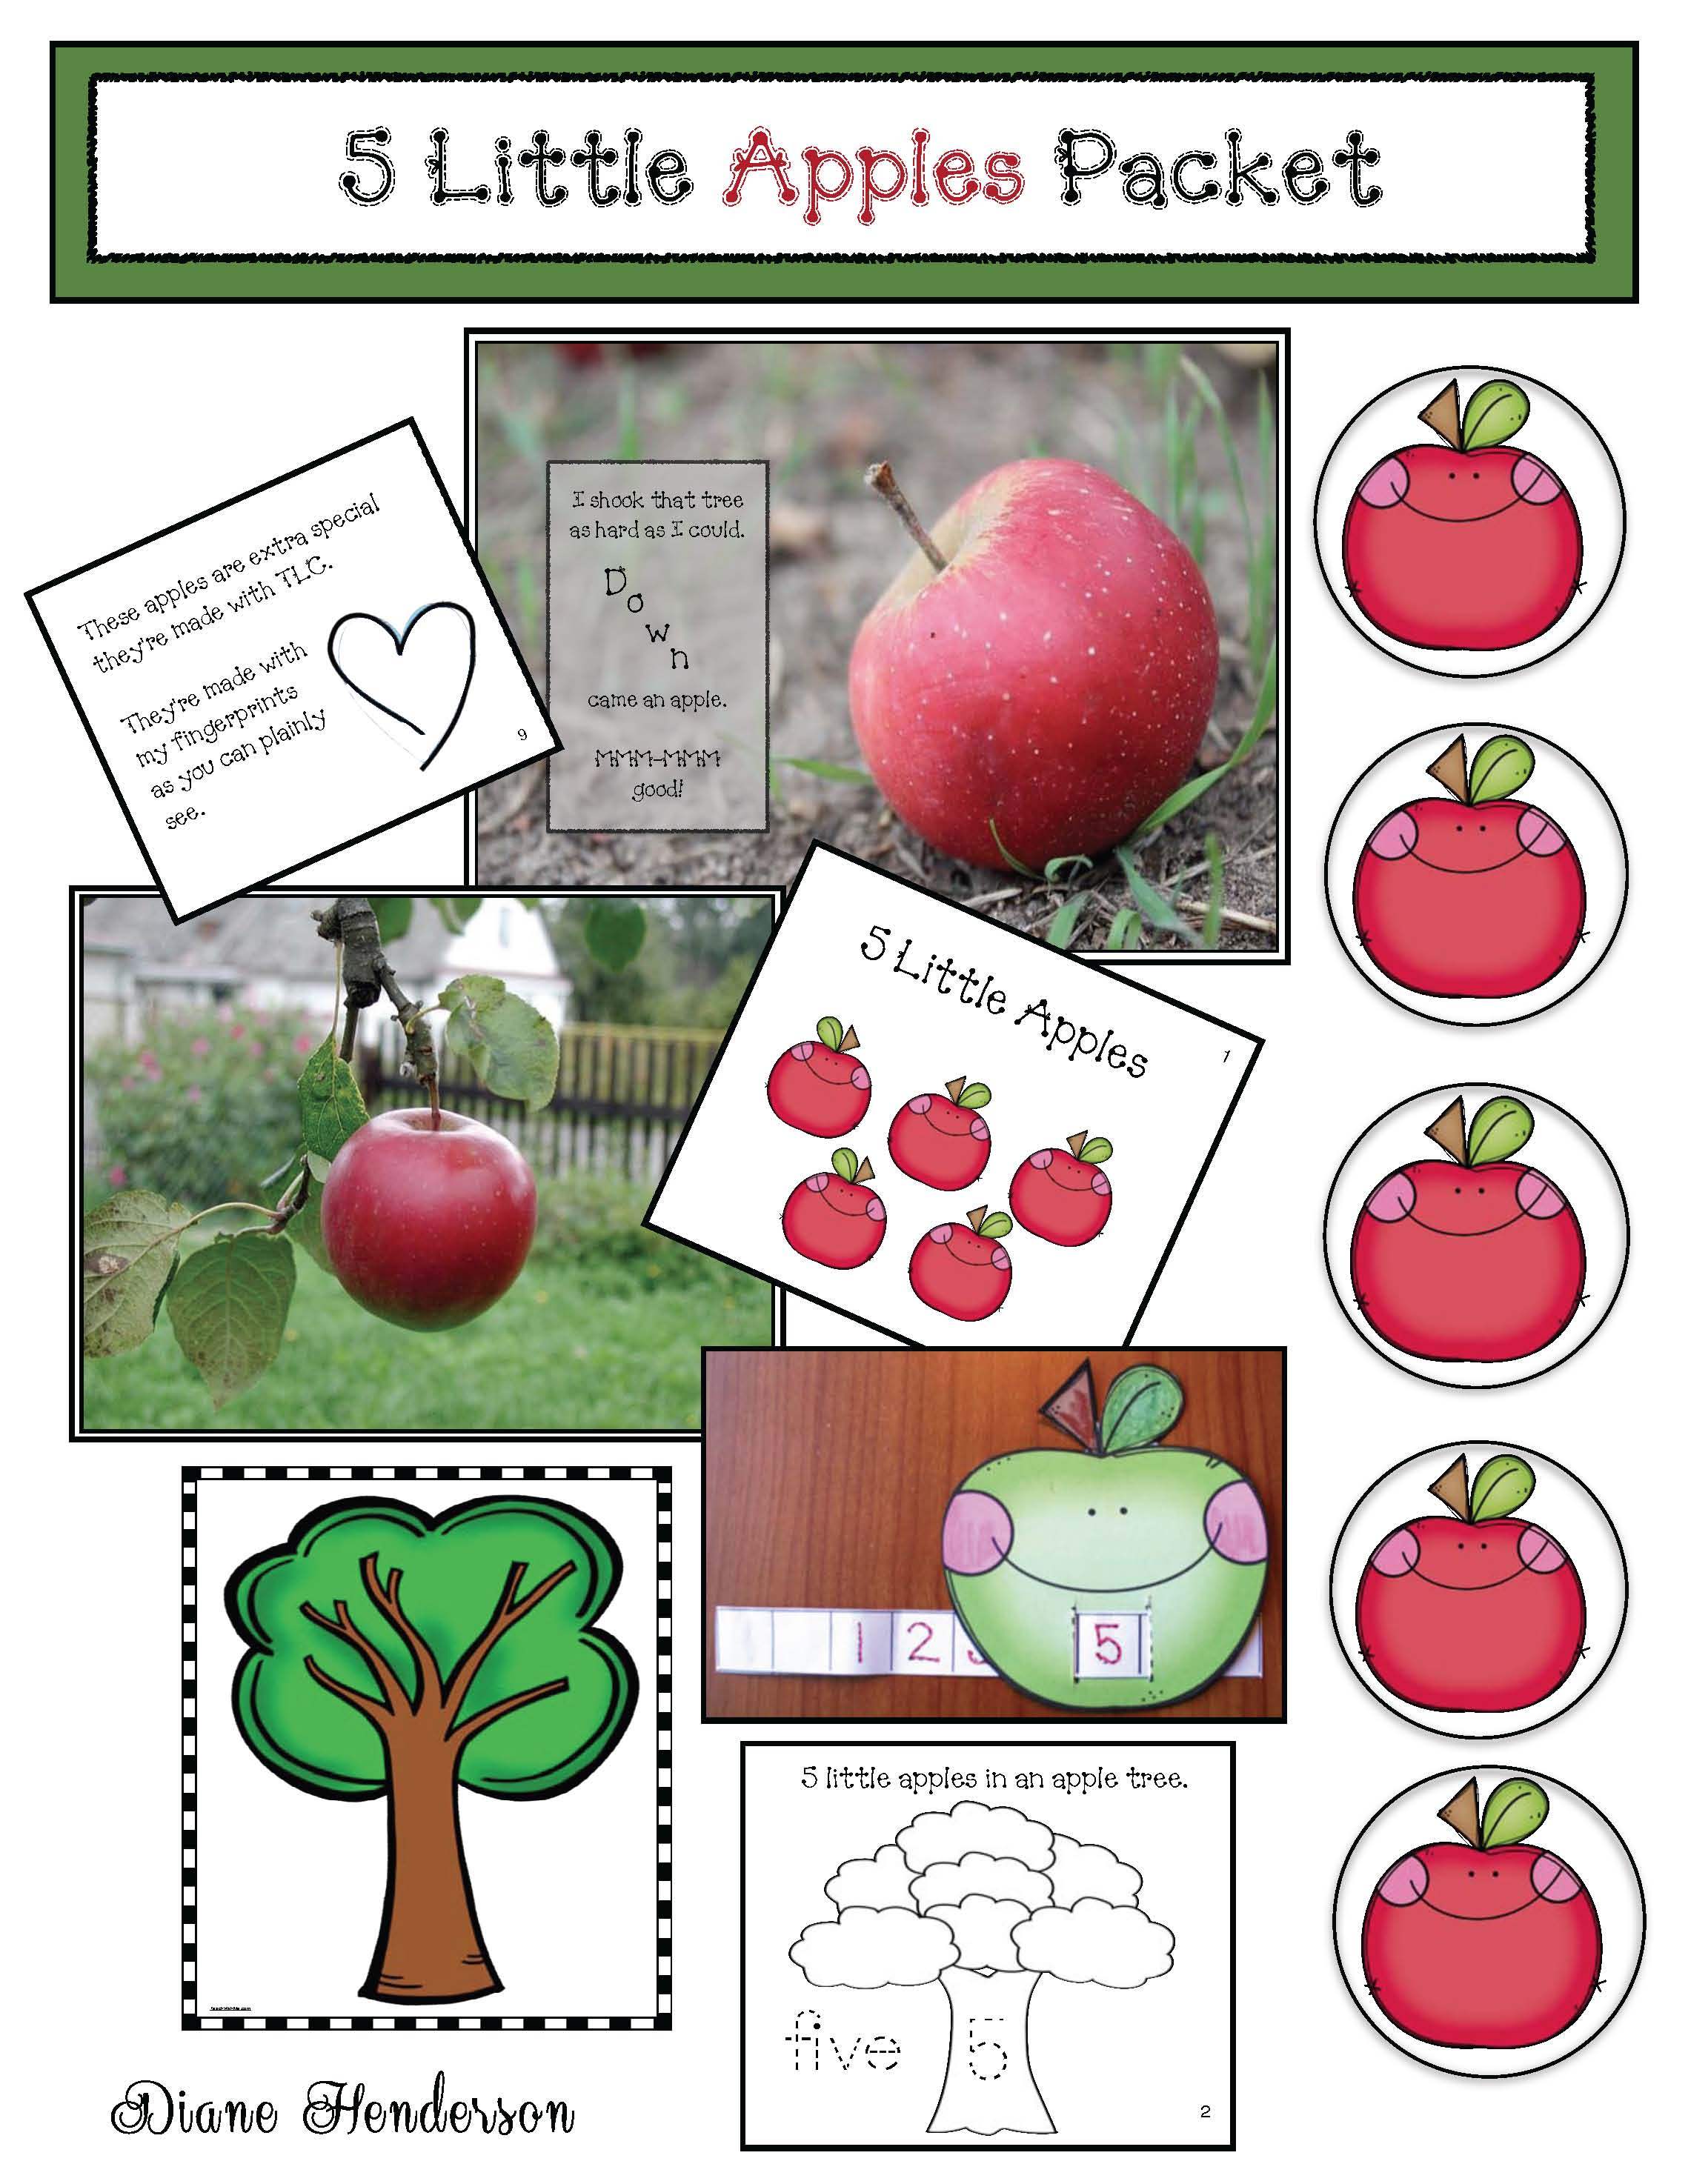 5 little apples in an apple tree song, apple activities, apple songs, apple crafts, apple games, apple emergent readers,